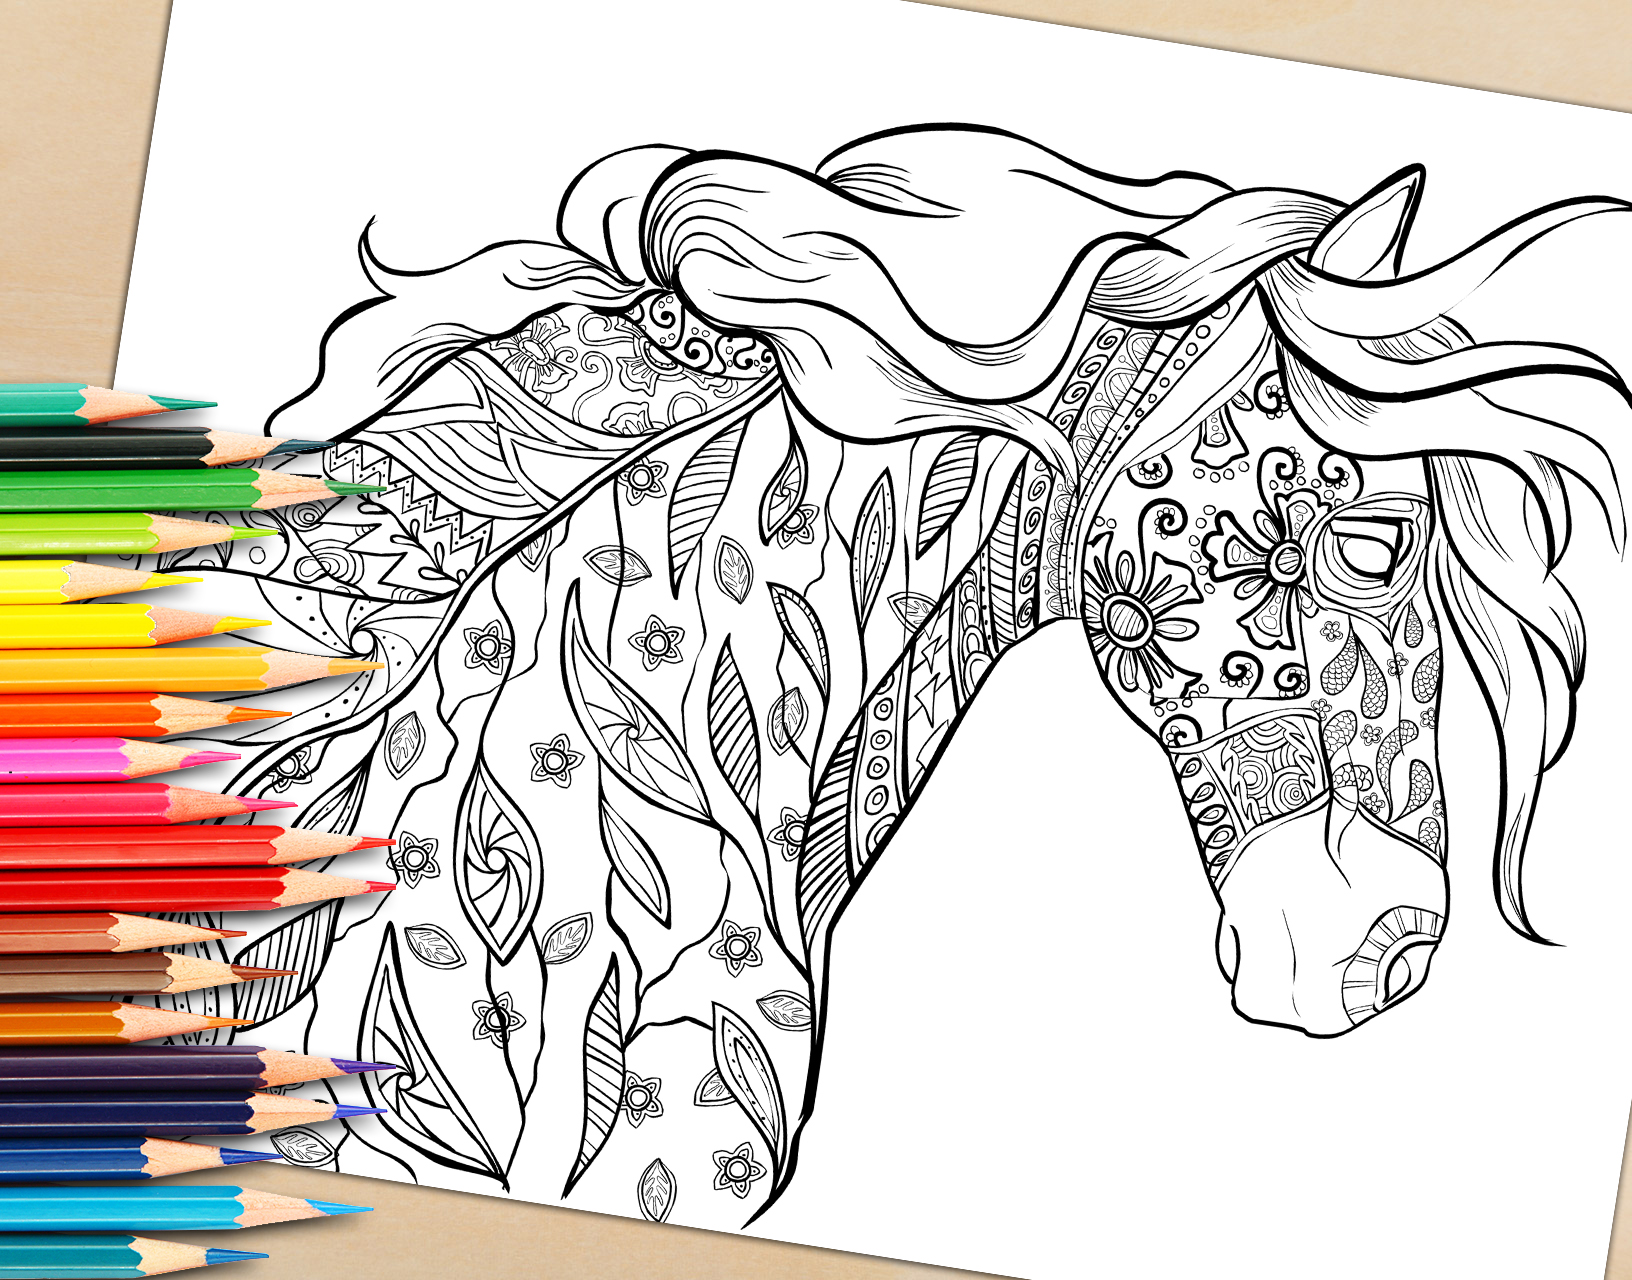 floral horse etsy likewise 25 best ideas about horse coloring pages on pinterest adult on horse coloring pages adults together with 25 best ideas about horse coloring pages on pinterest adult on horse coloring pages adults also adult coloring book horses 40 beautifully drawn coloring pages on horse coloring pages adults together with 25 best ideas about horse coloring pages on pinterest adult on horse coloring pages adults